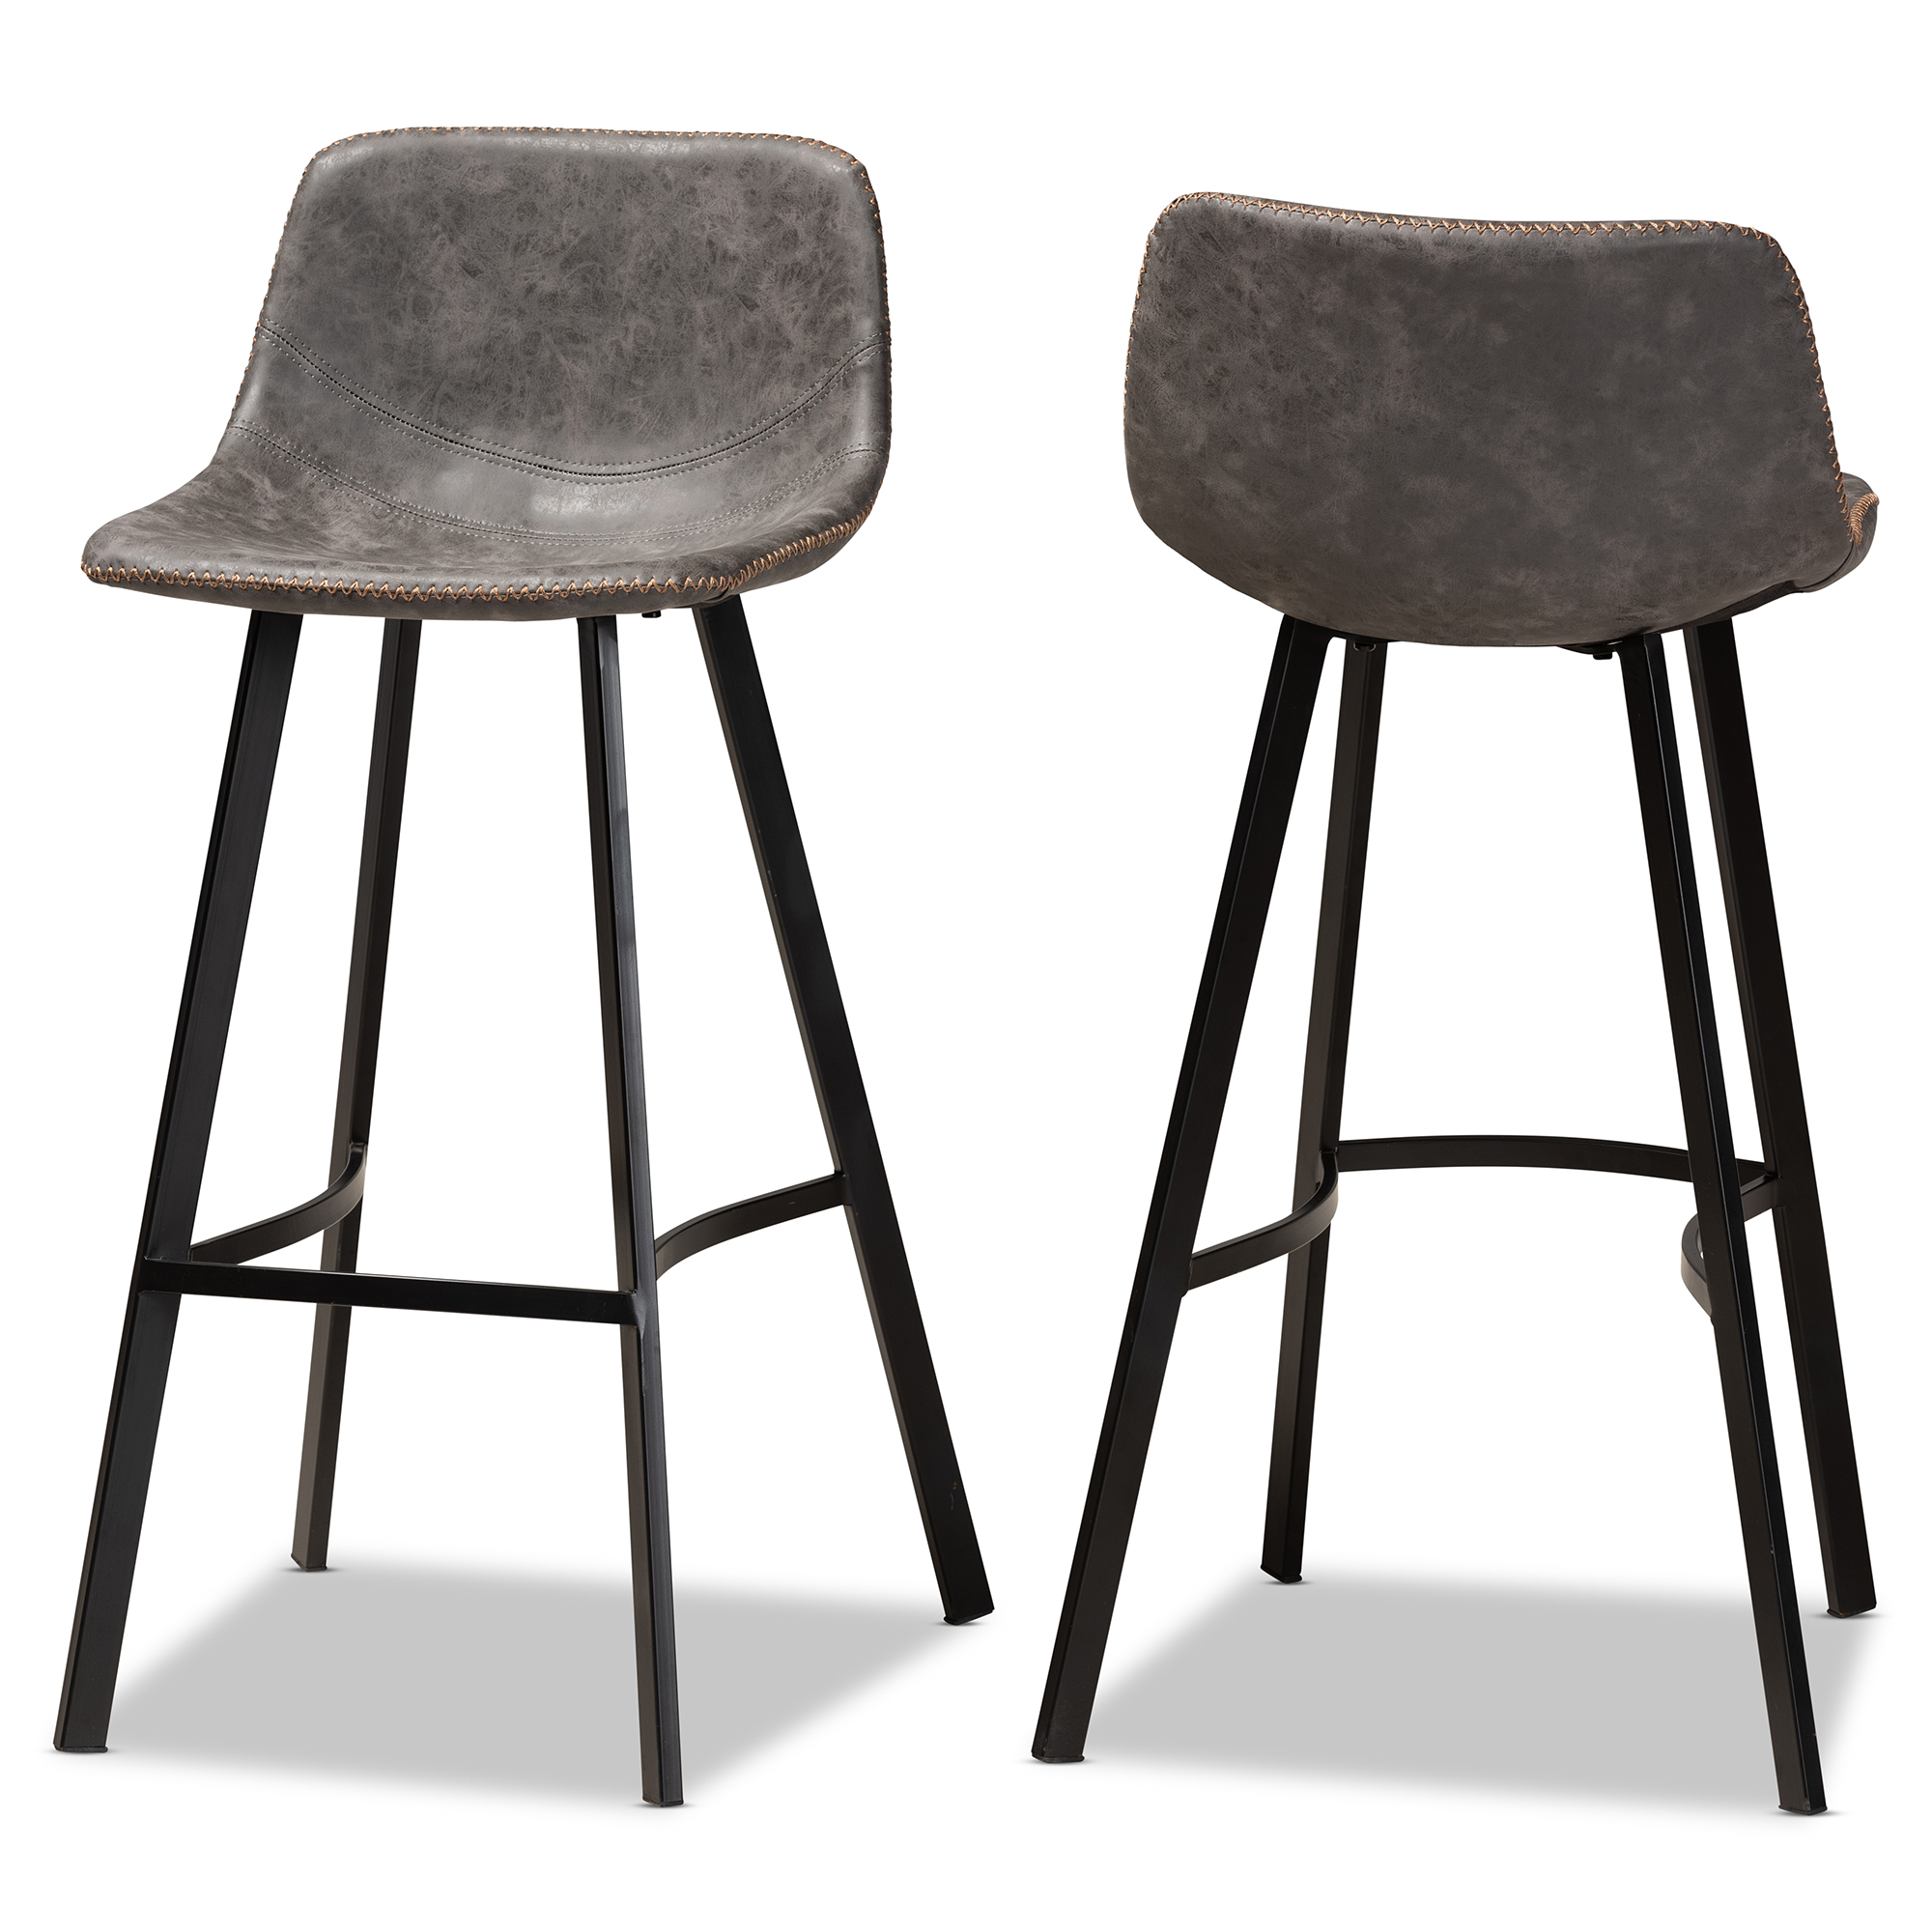 baxton studio tani rustic industrial grey and brown faux leather upholstered black finished 2 piece metal bar stool set walmart com